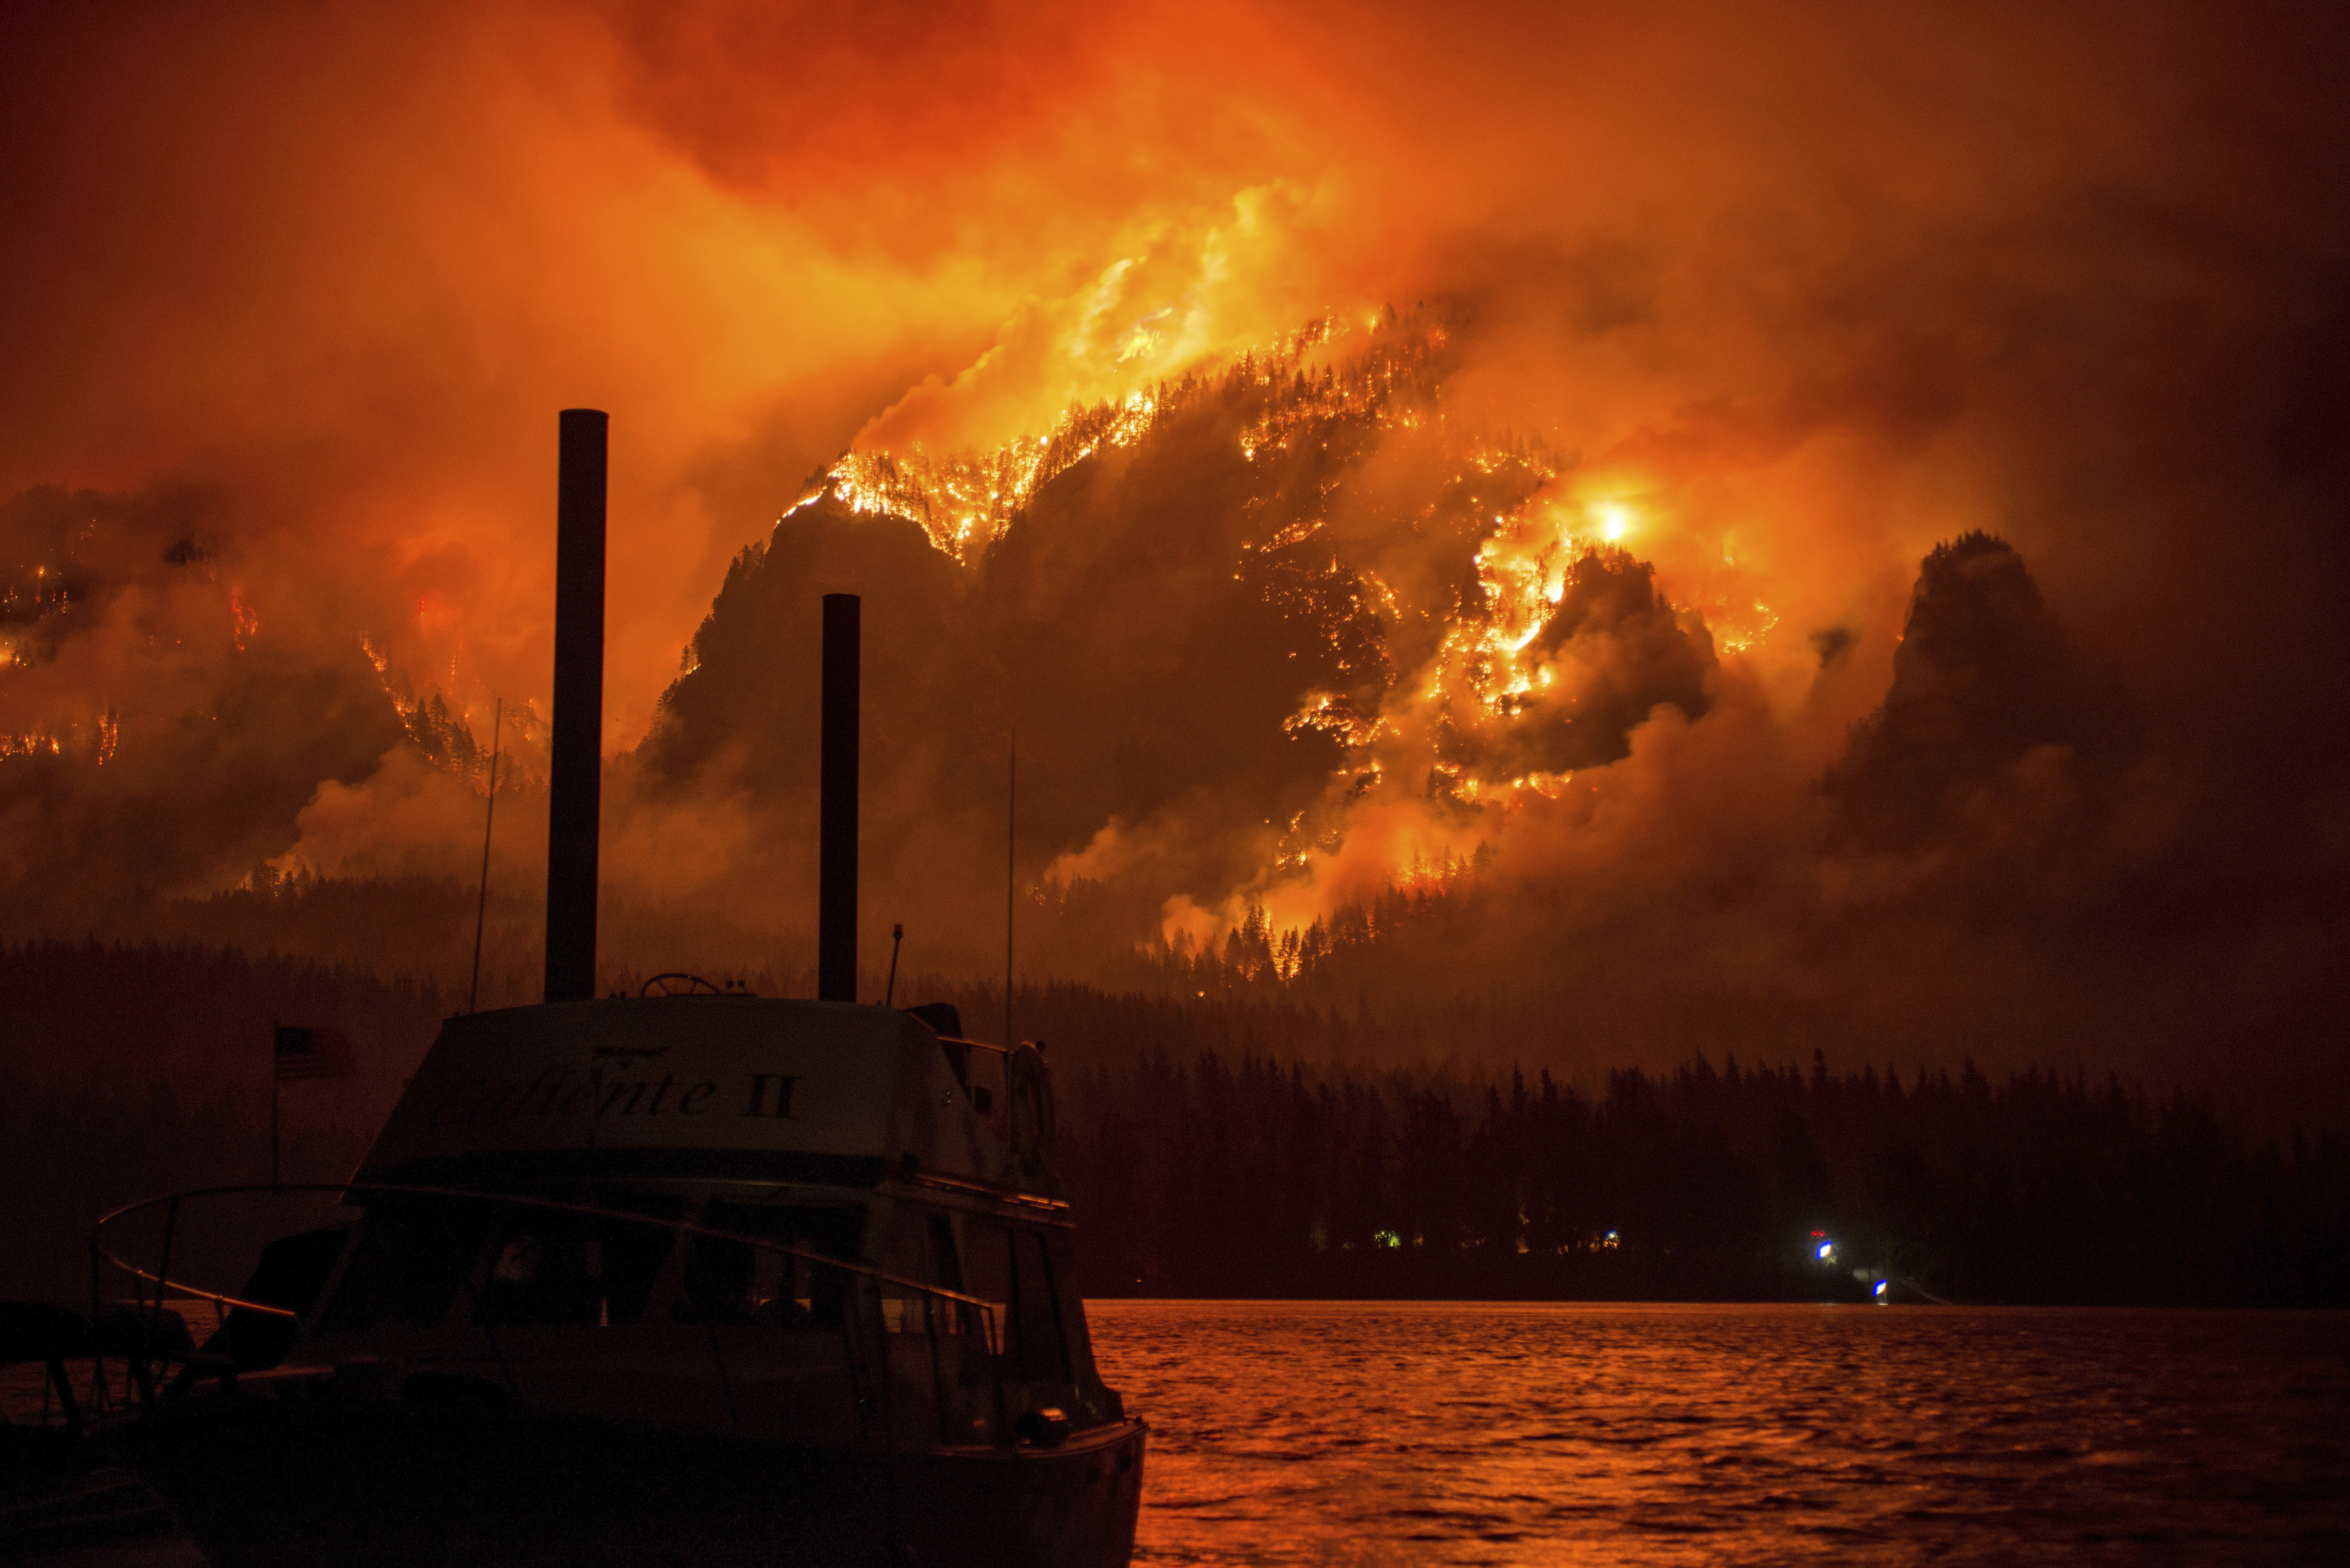 Wildfire ravages Gorge, Ash chokes communities